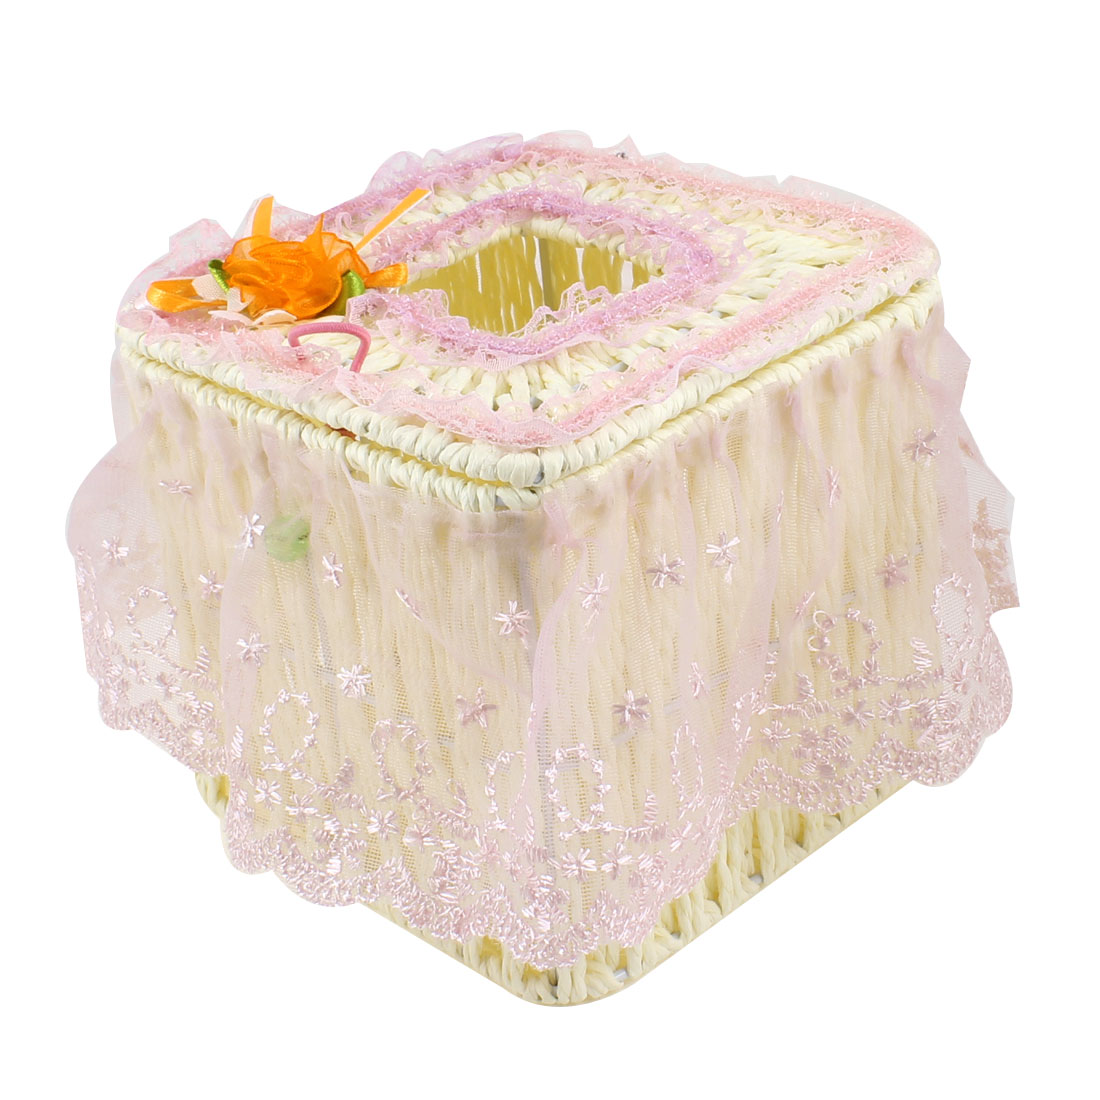 Home Light Purple Flower Lace Decor Square Shaped Beige Woven Tissue Box Case